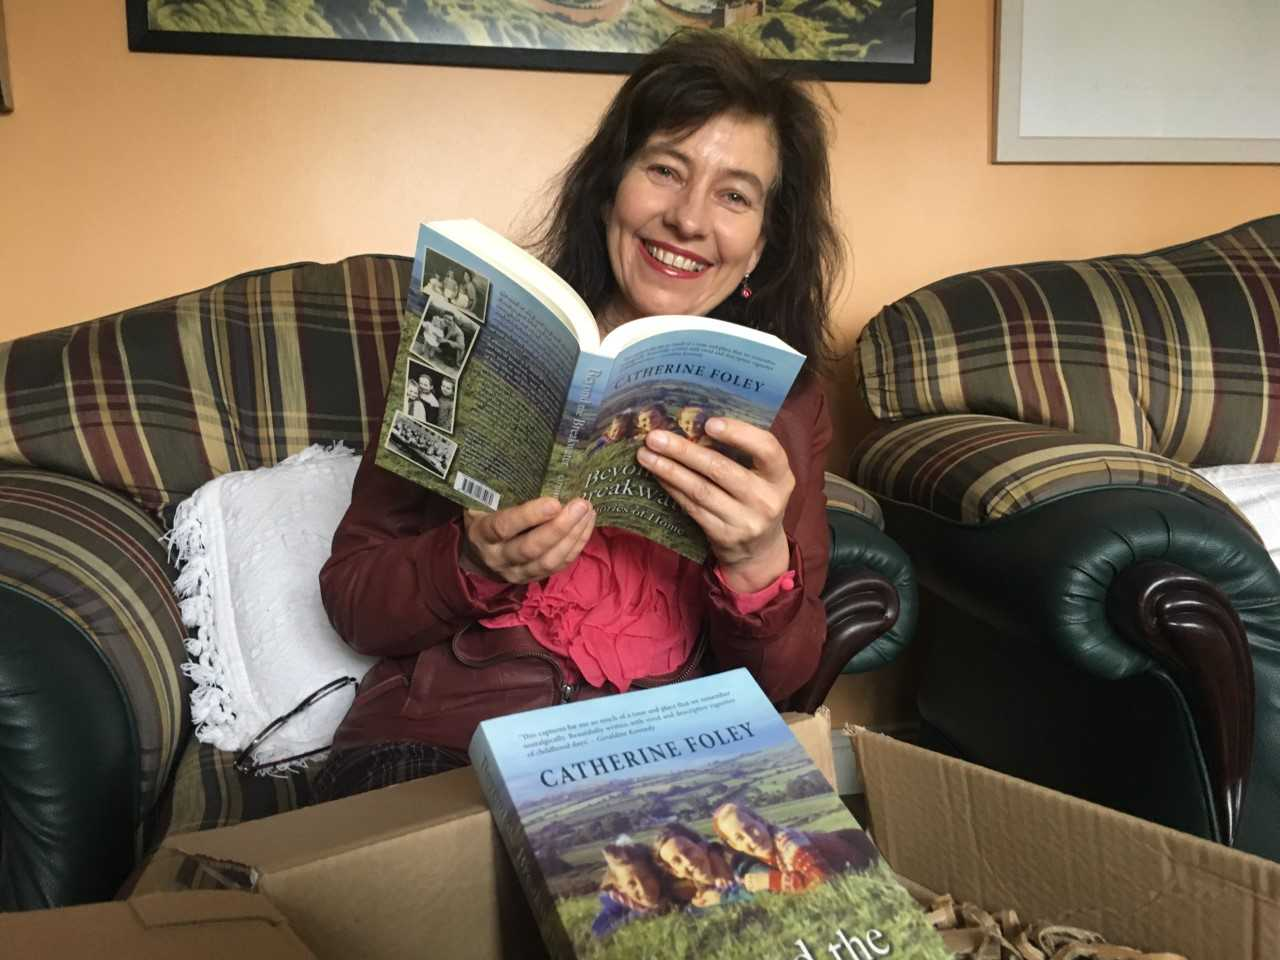 Listen back: Waterford journalist Catherine Foley talks about her newly published memoir